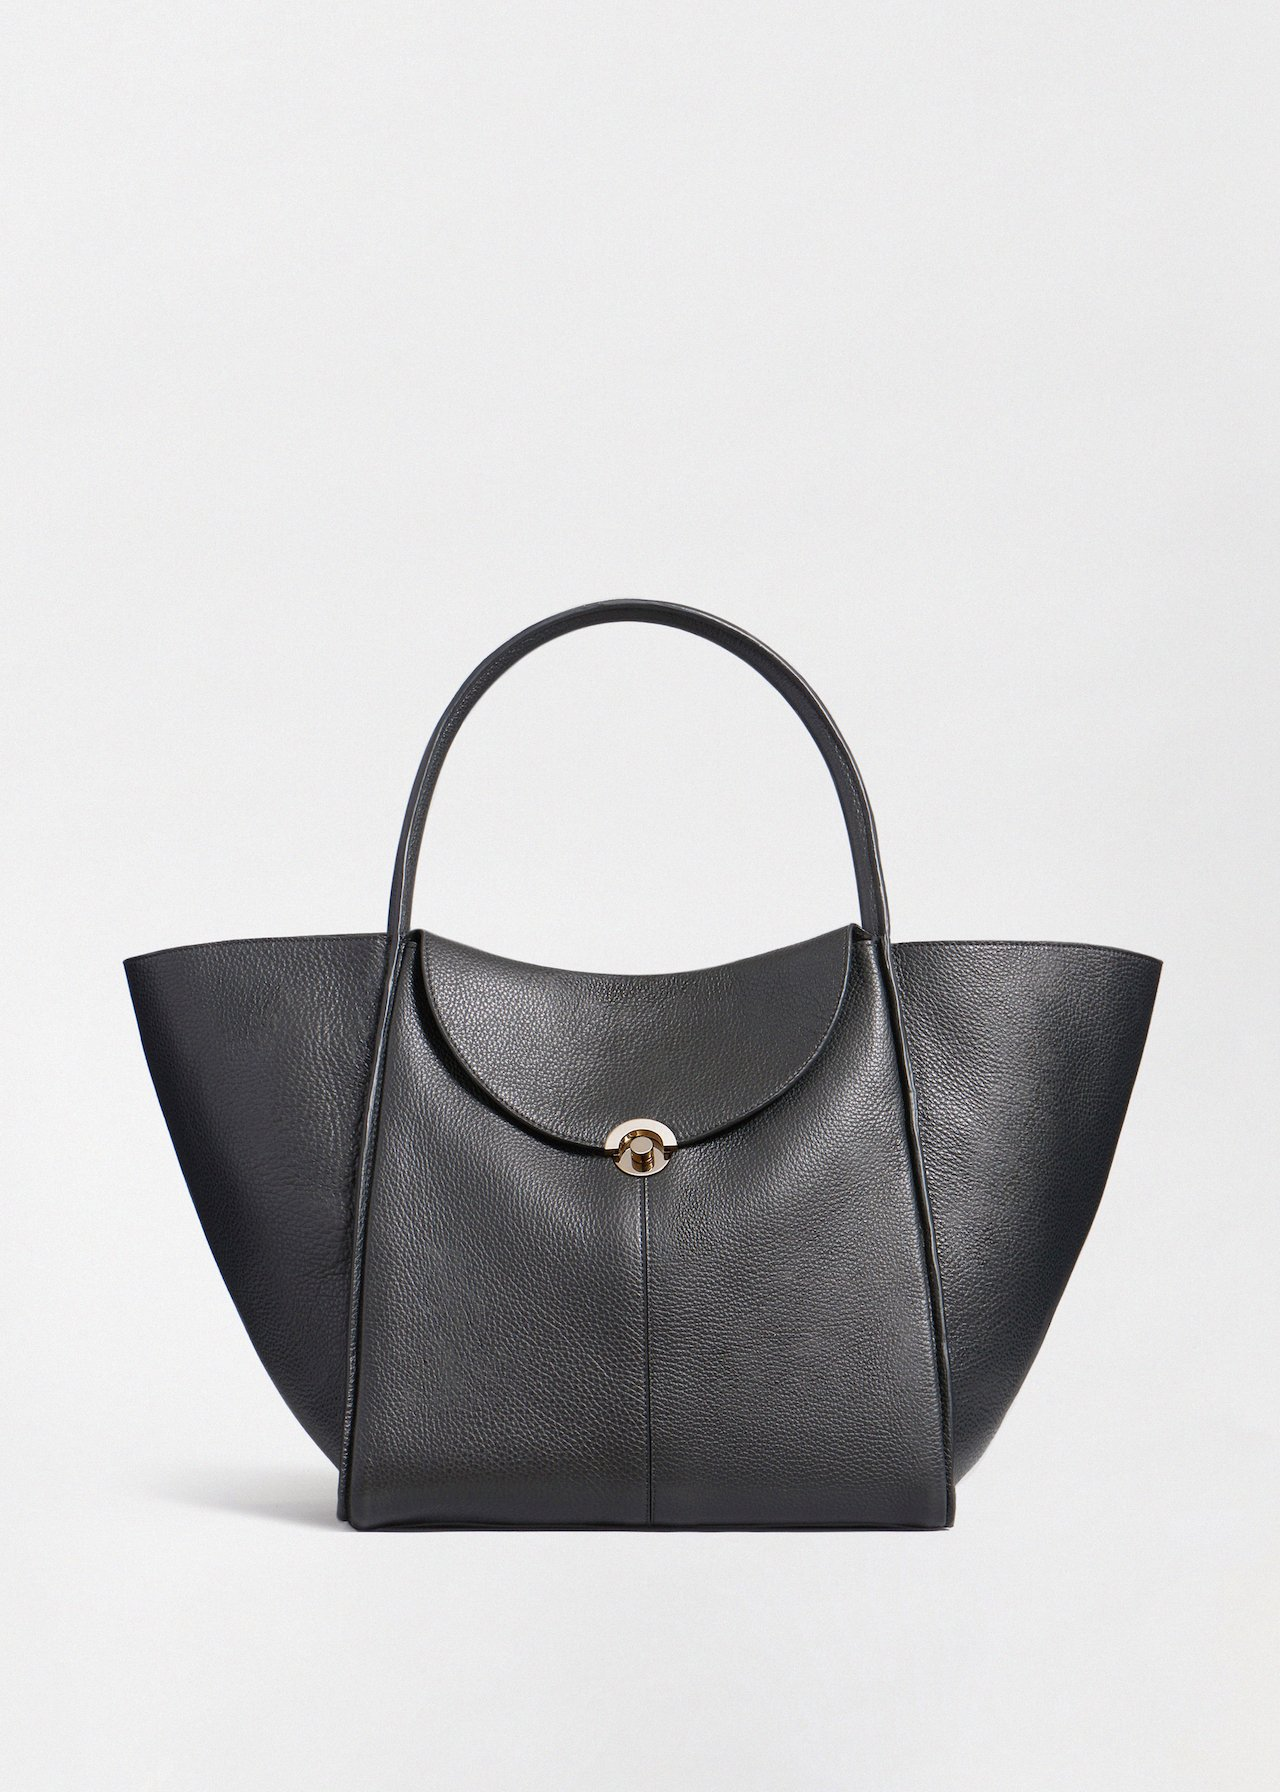 Cabas Bag in Pebbled Leather - Ivory in Black by Co Collections